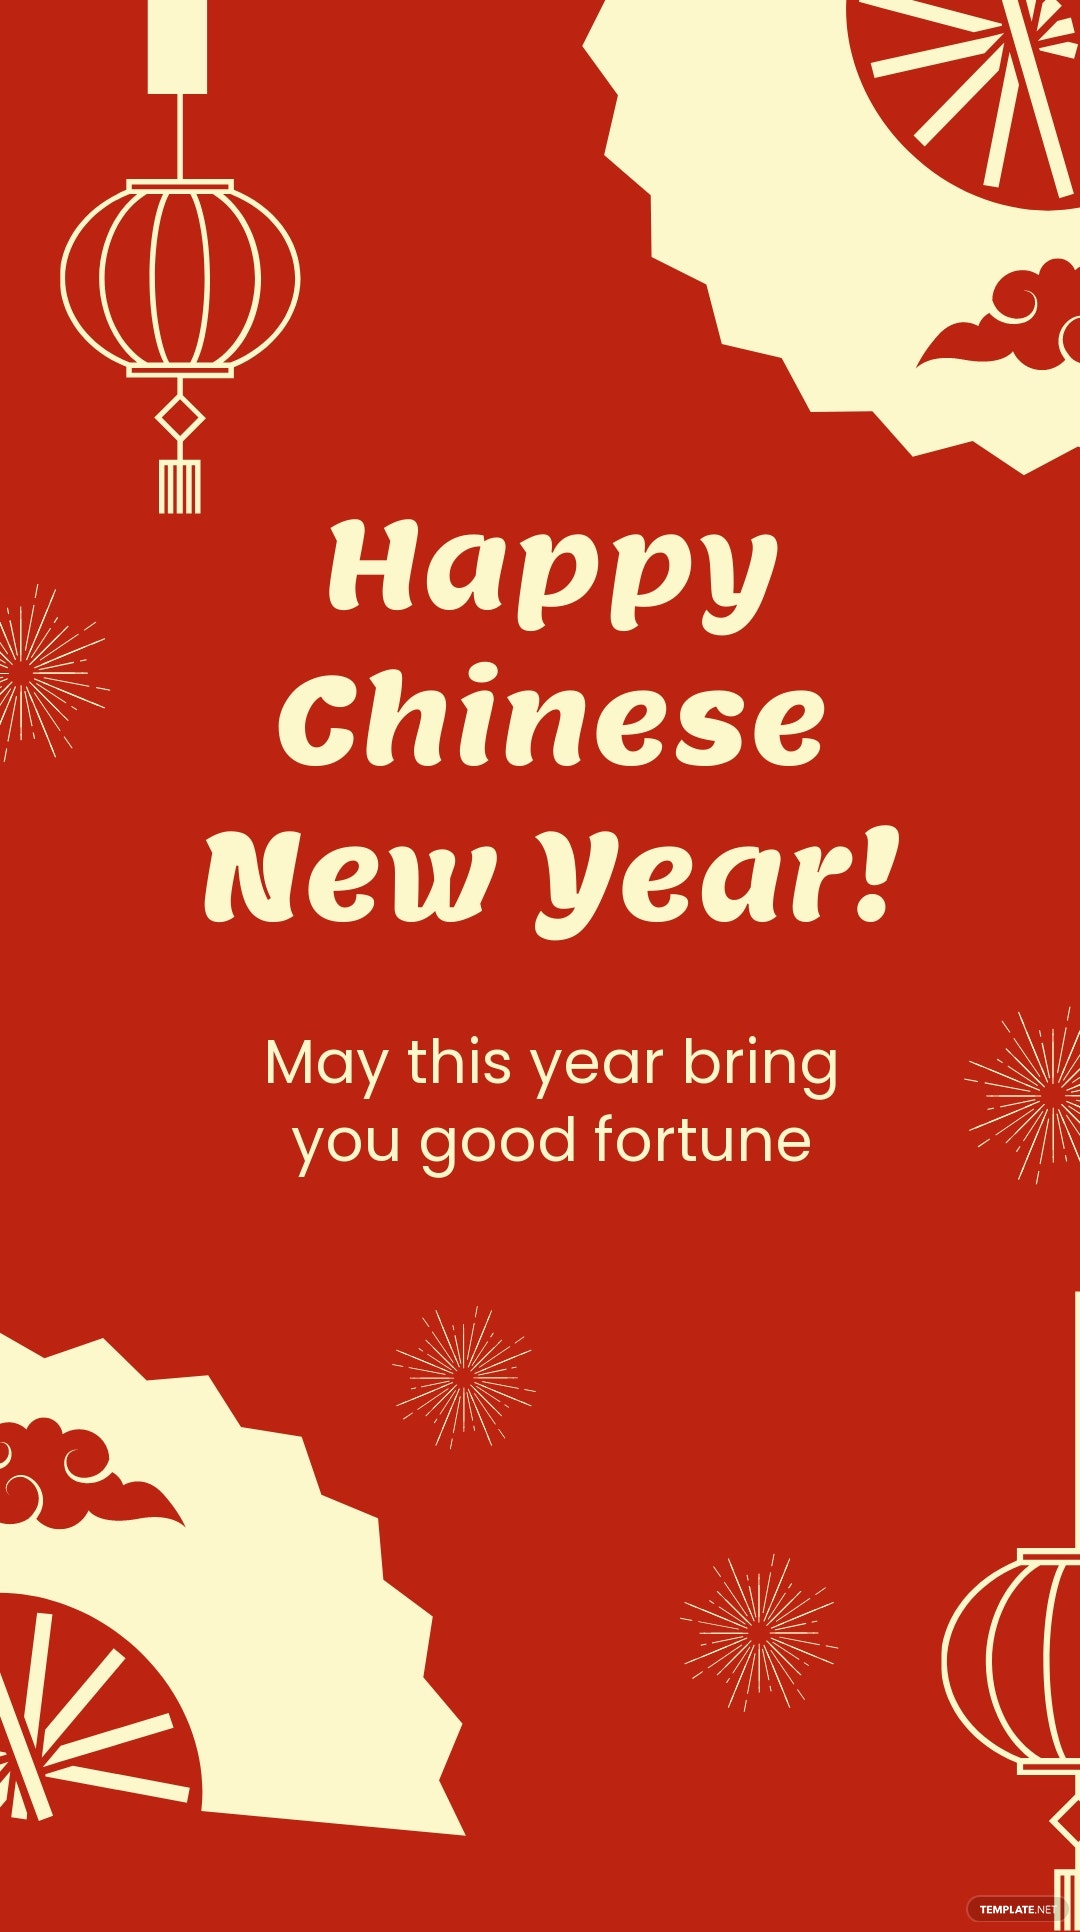 Chinese New Year Greeting Instagram Story Template 3.jpe